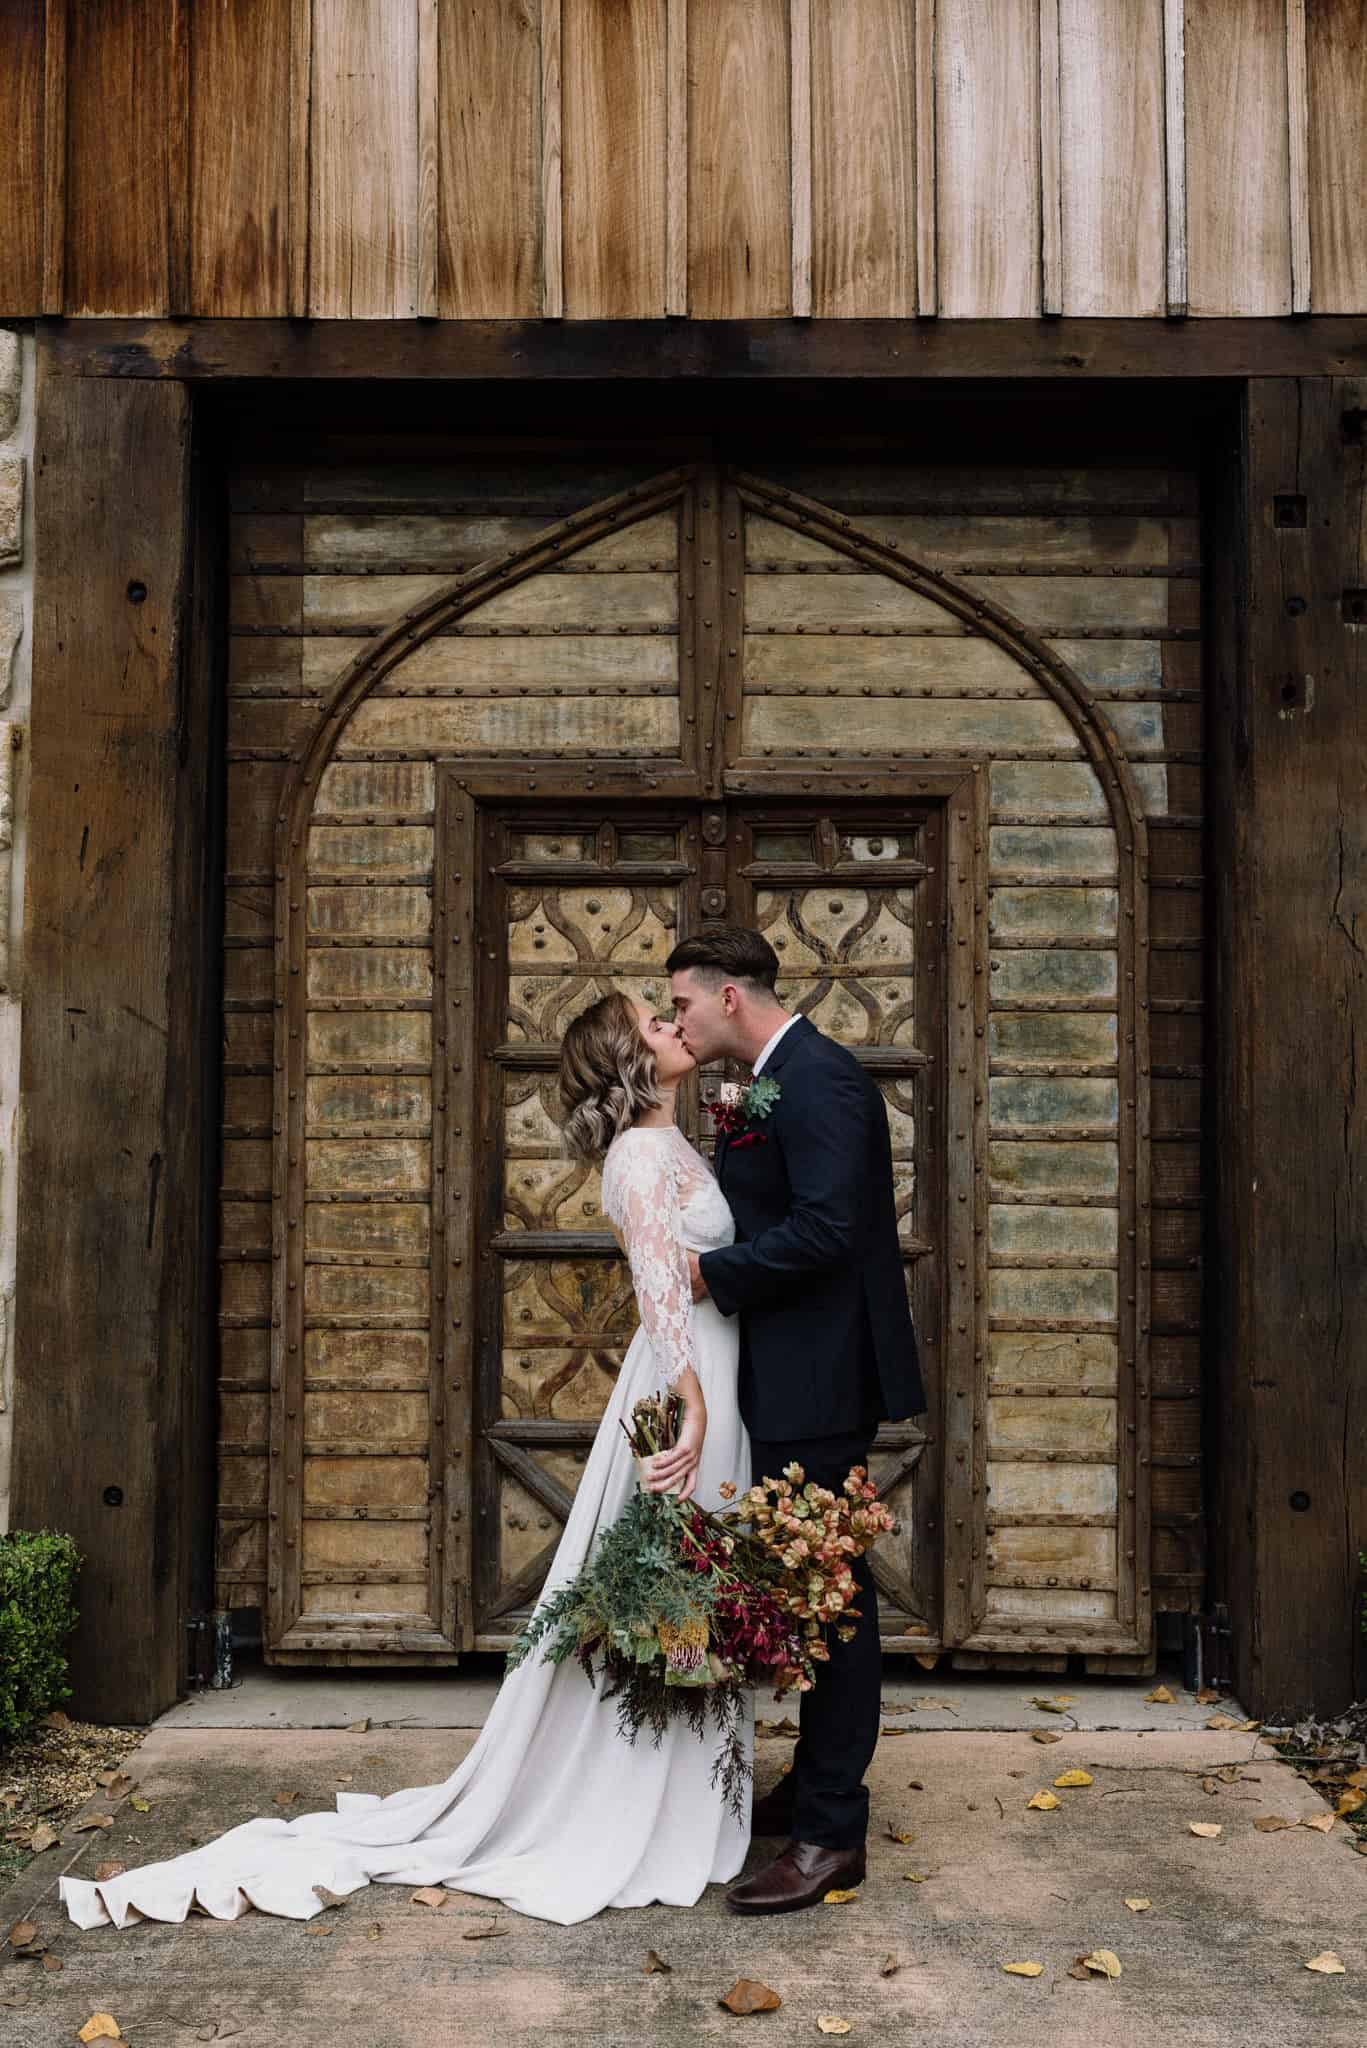 Stunning bride and groom kiss in front of old wooden door at stonehurst cedar creek james white hunter valley wedding photographer